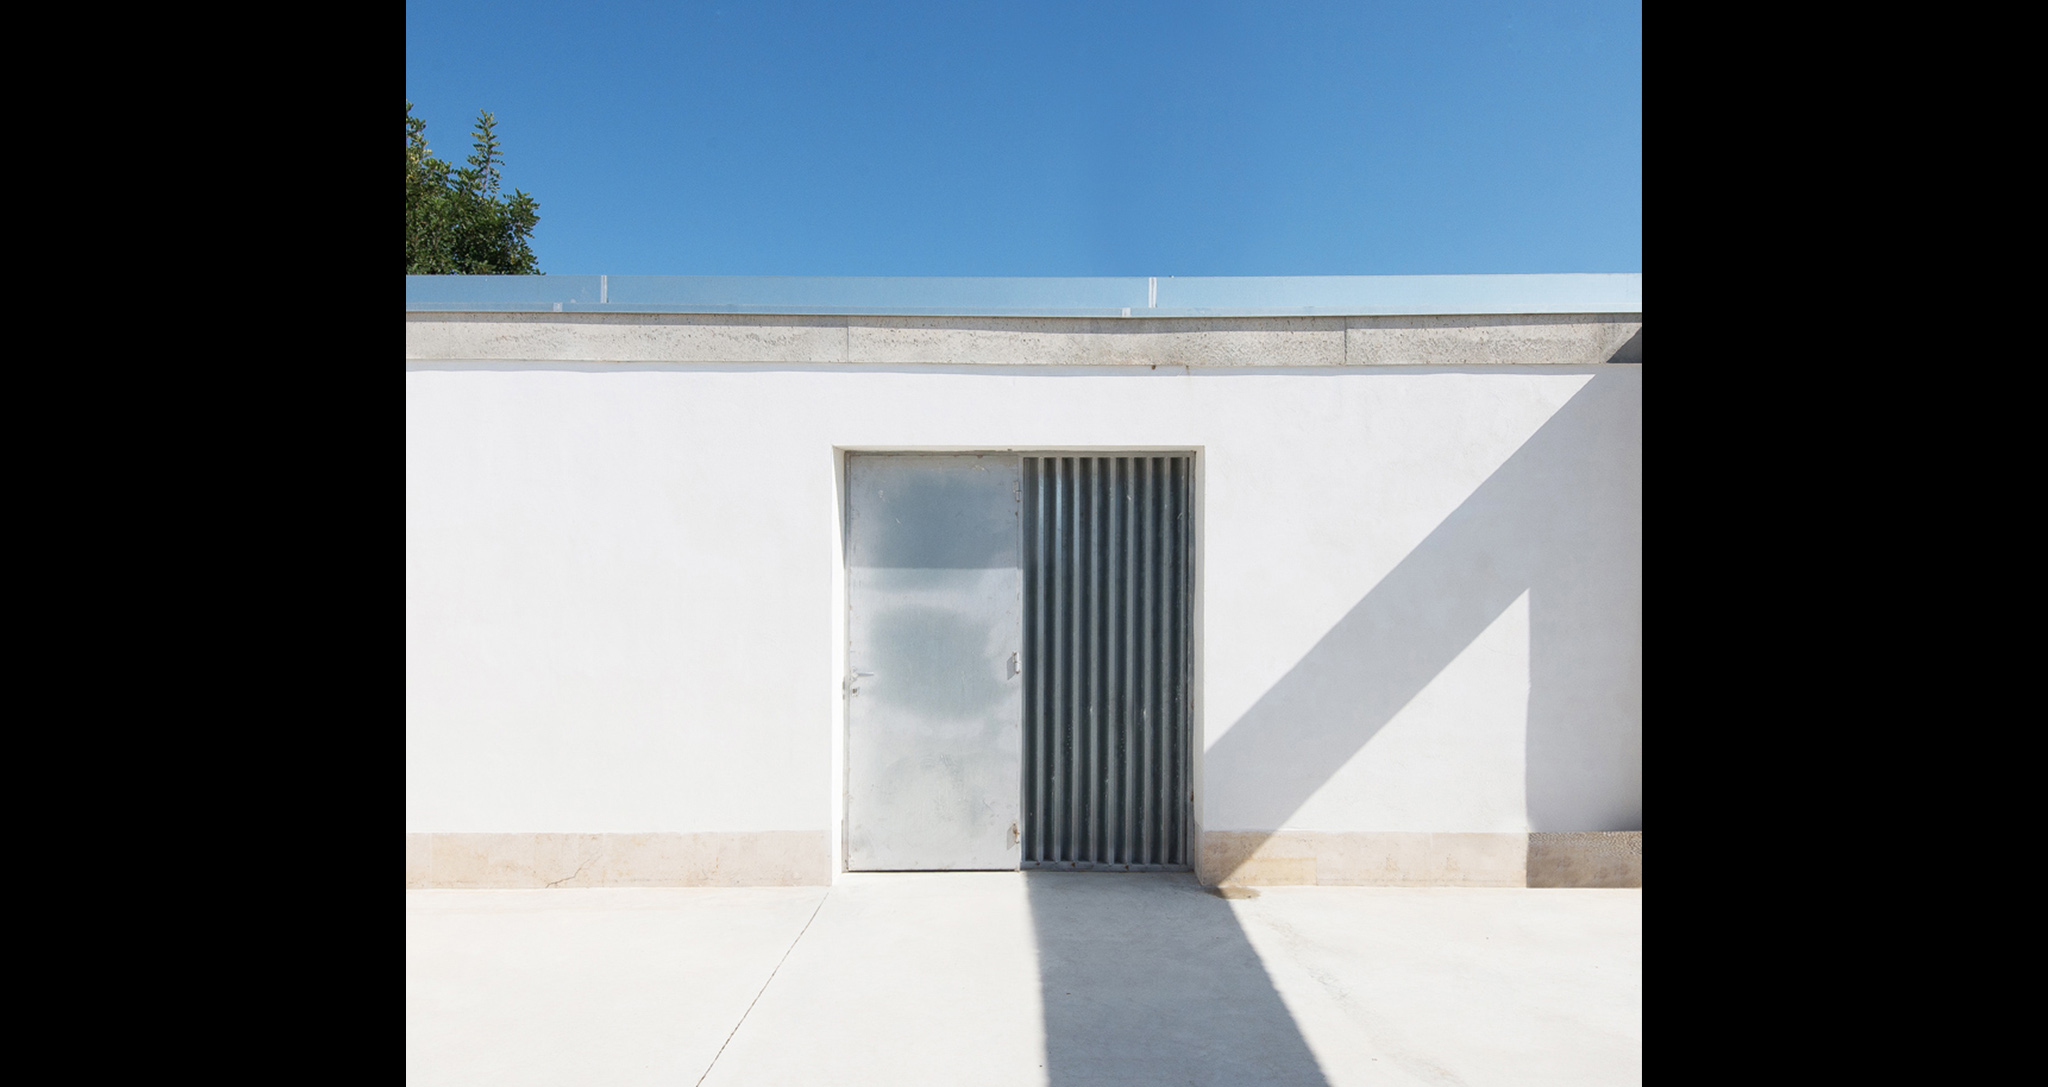 FAENETA 2.0 comprehensive housing reform project in the countryside of Elche, by Rocamora Desing & Architecture